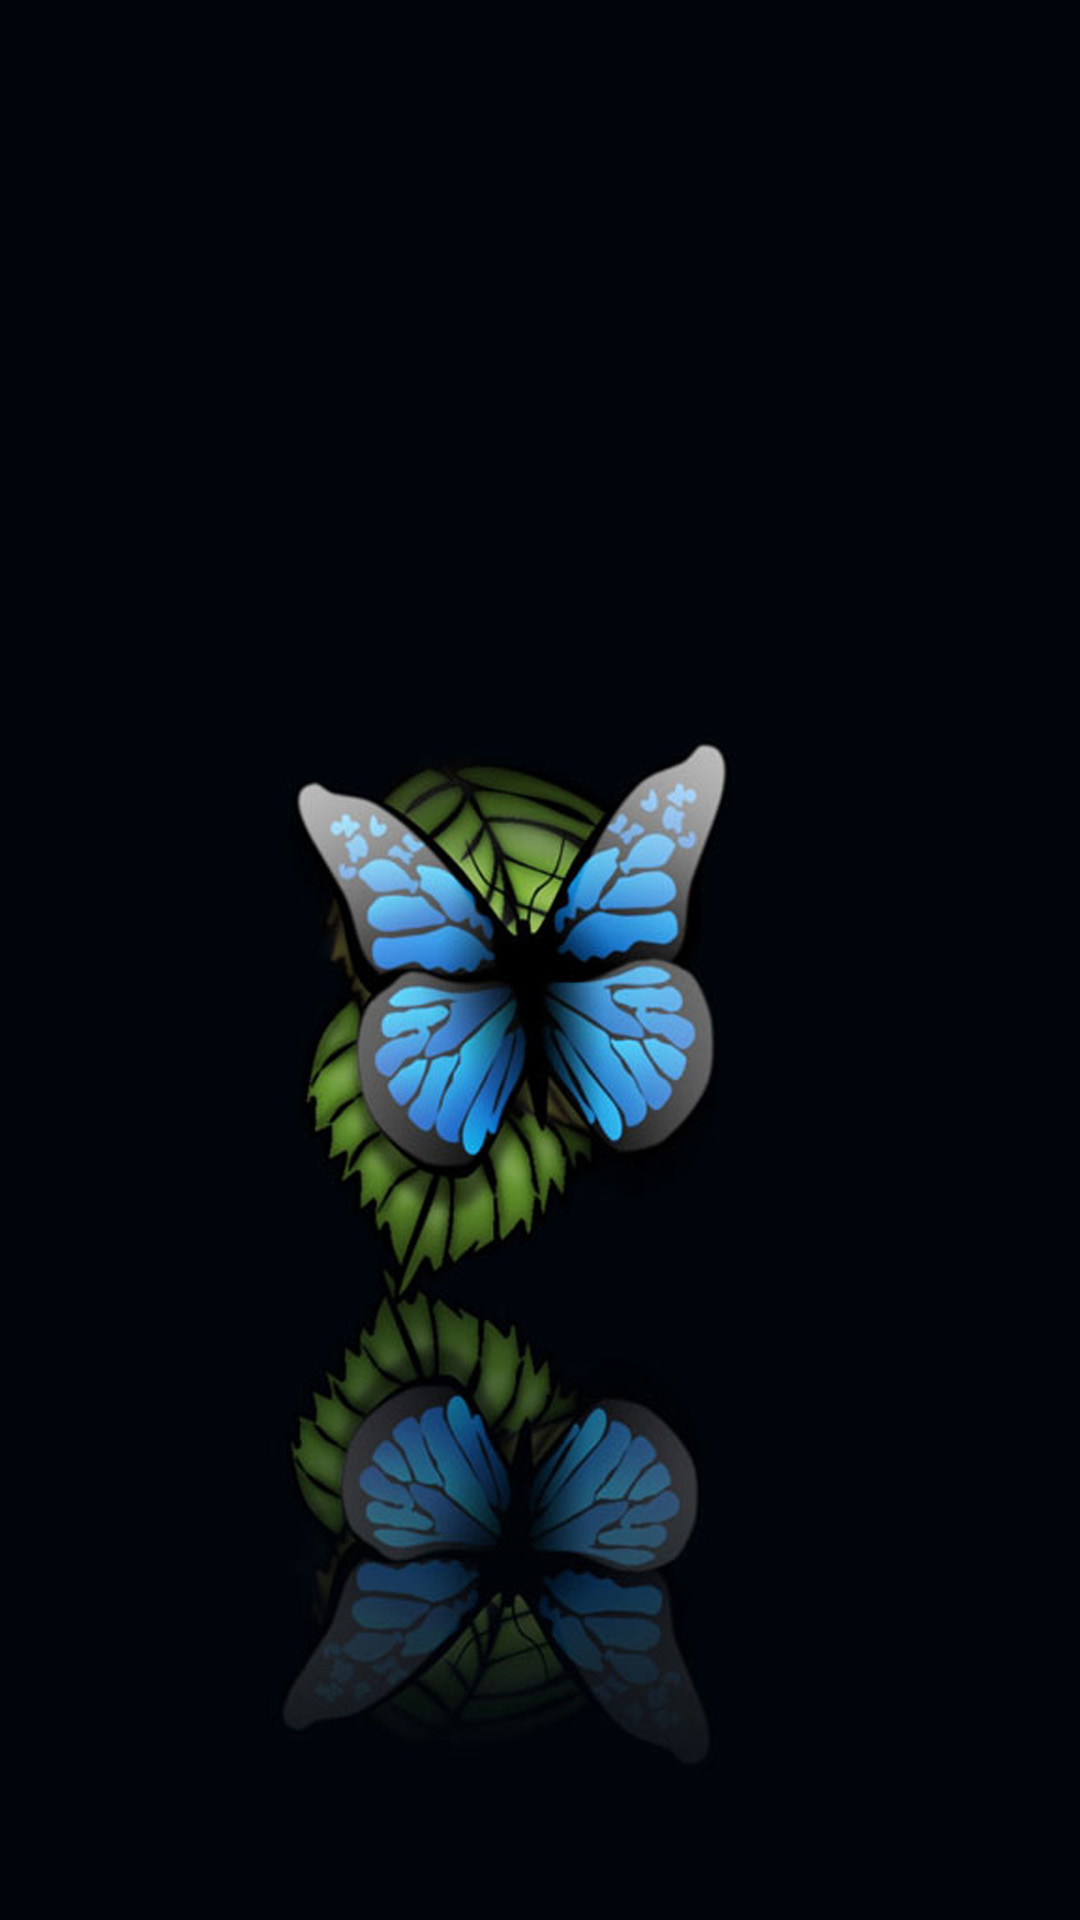 Cute Smiley Wallpapers Free Butterfly Backgrounds For Android Pixelstalk Net